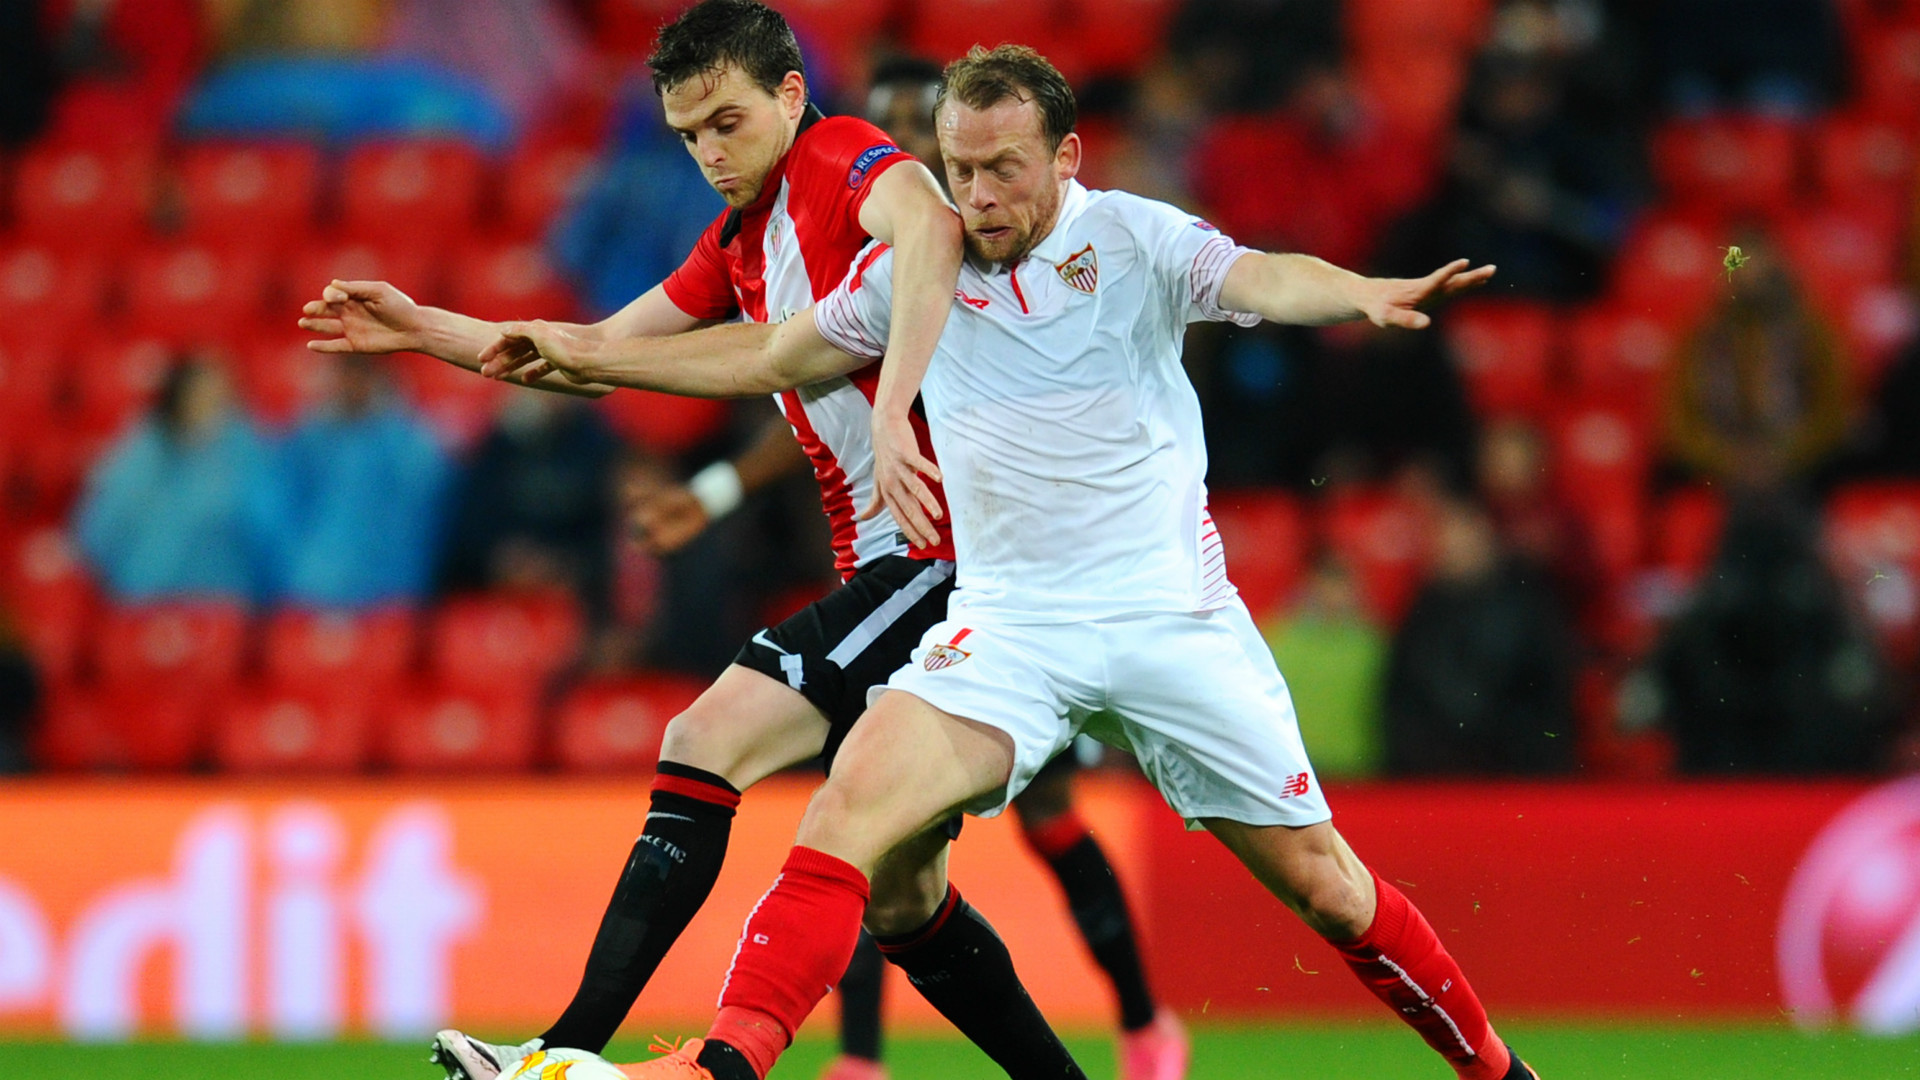 Athletic bilbao vs sevilla betting preview goal eric bettinger clearpath chicago